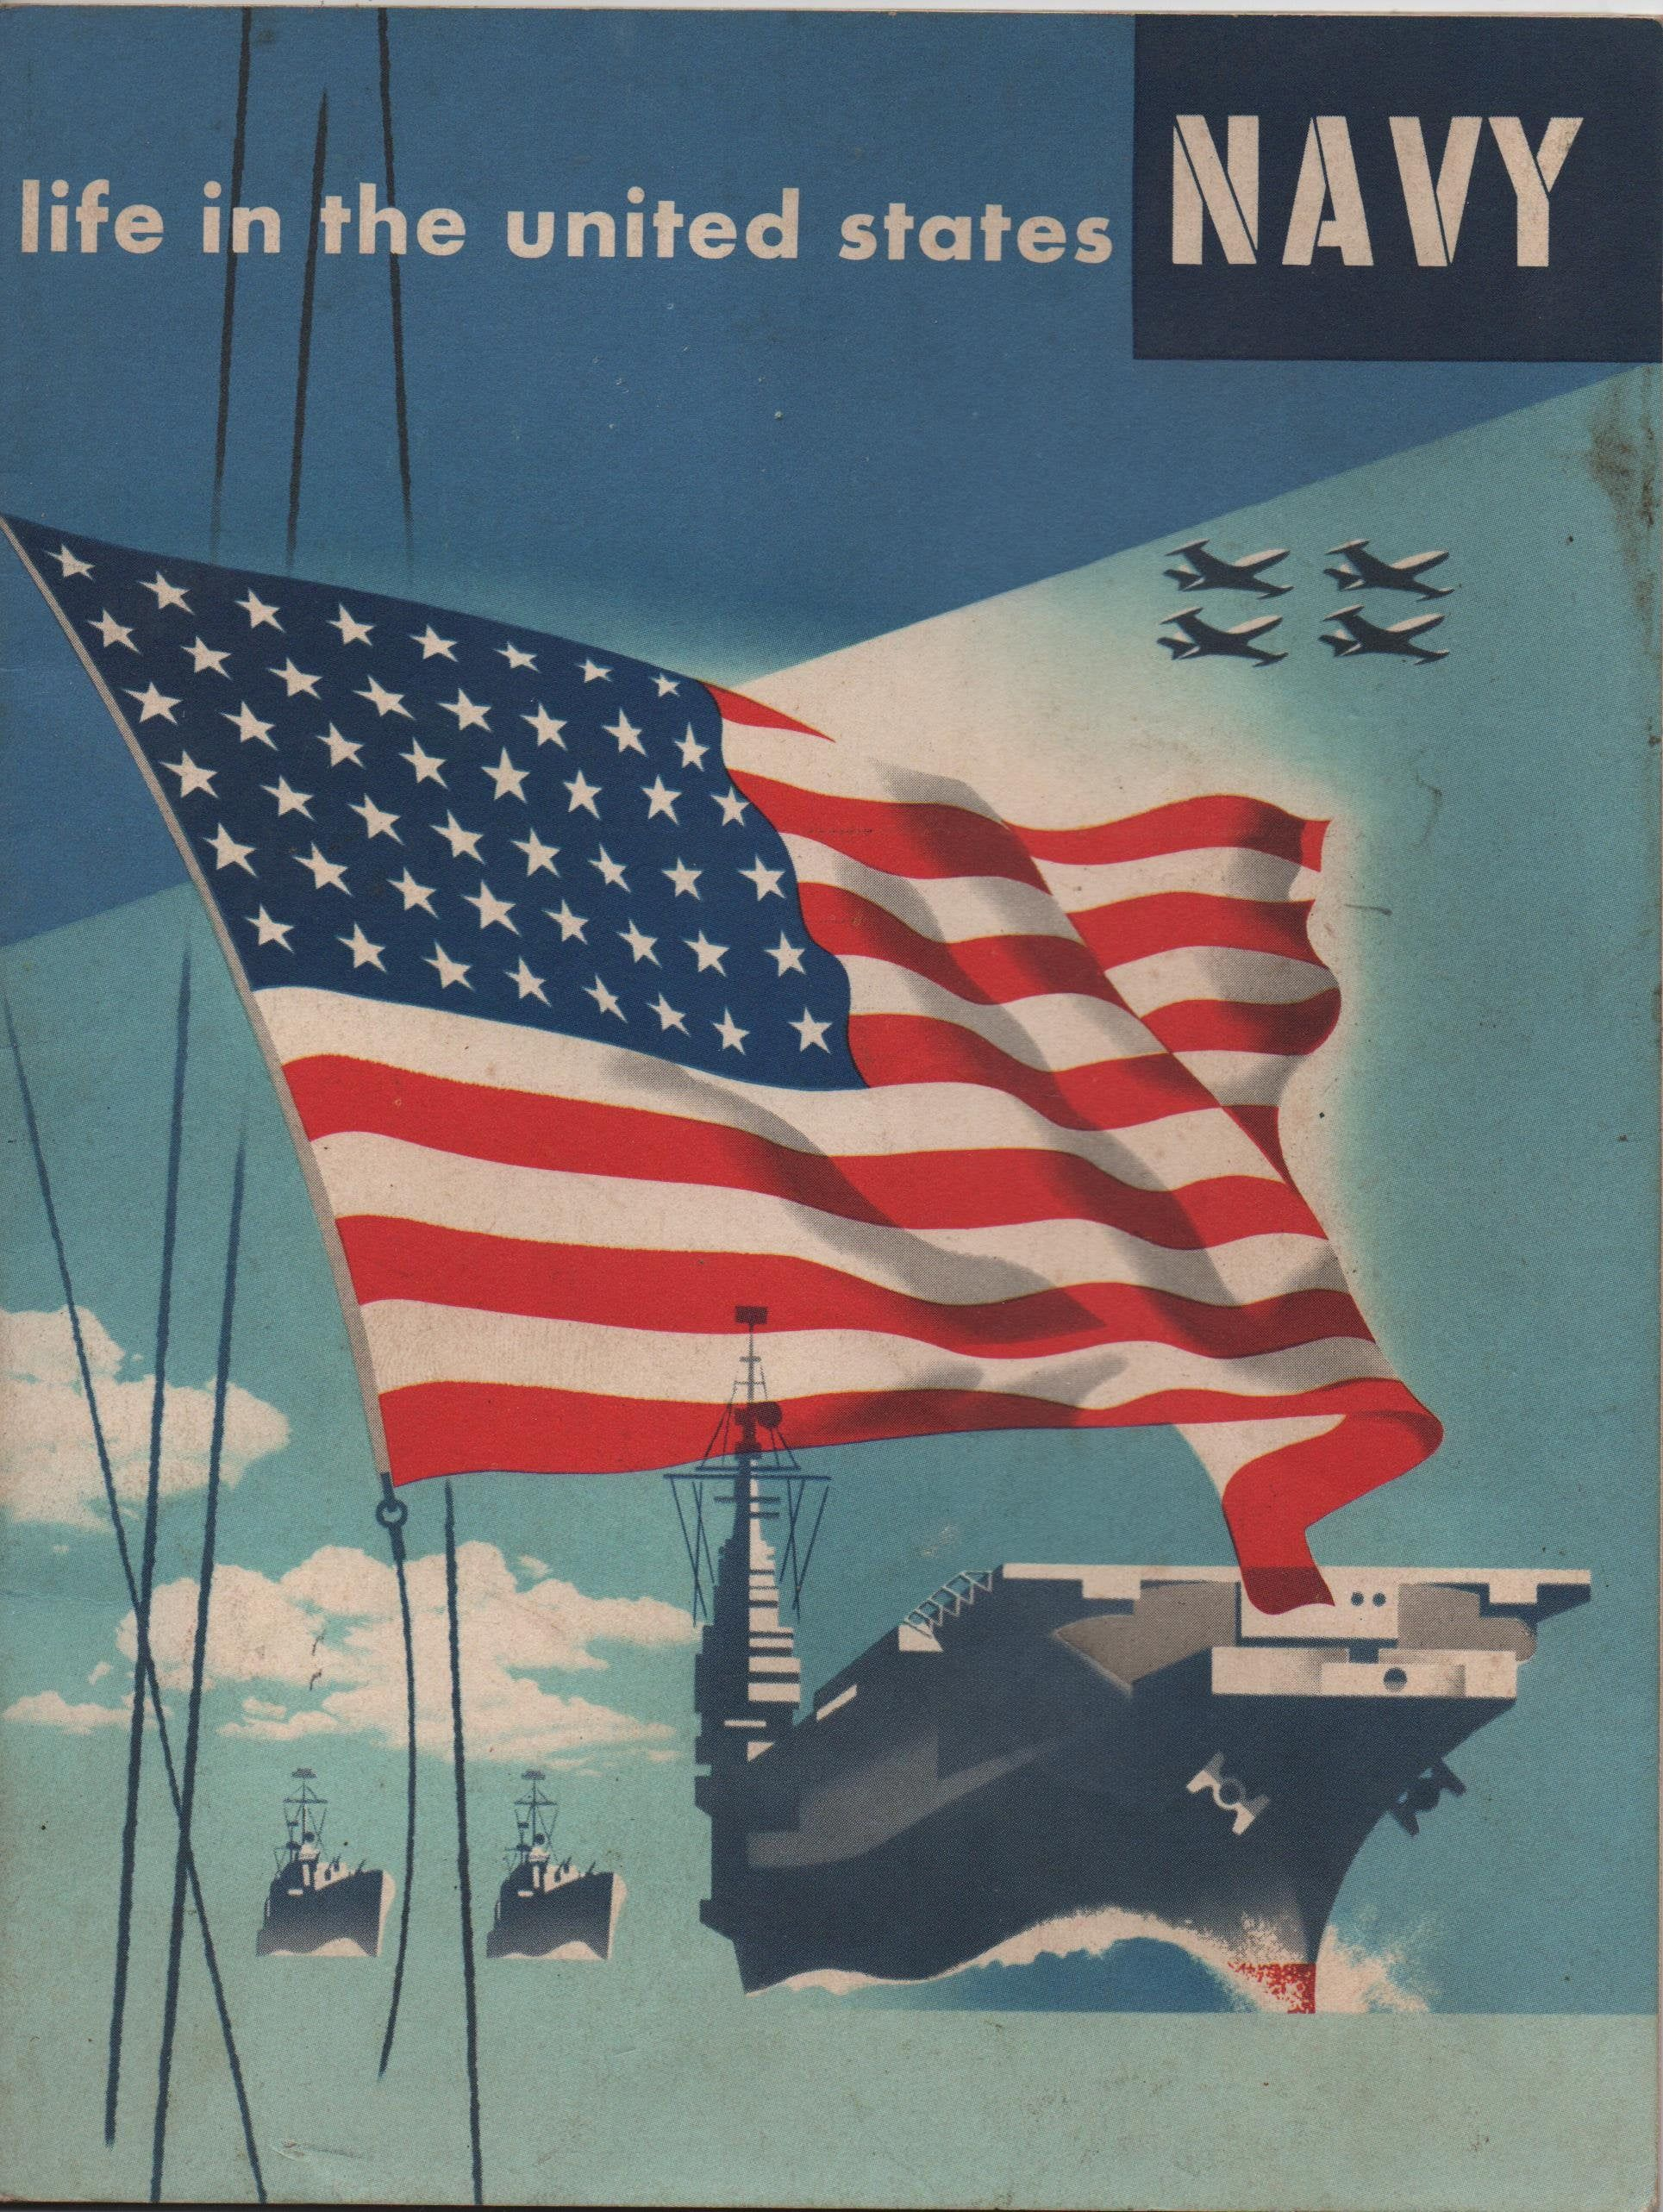 Life In The United States Navy Illustrated Booklet C1950s Etsy In 2020 United States Navy Illustration United States